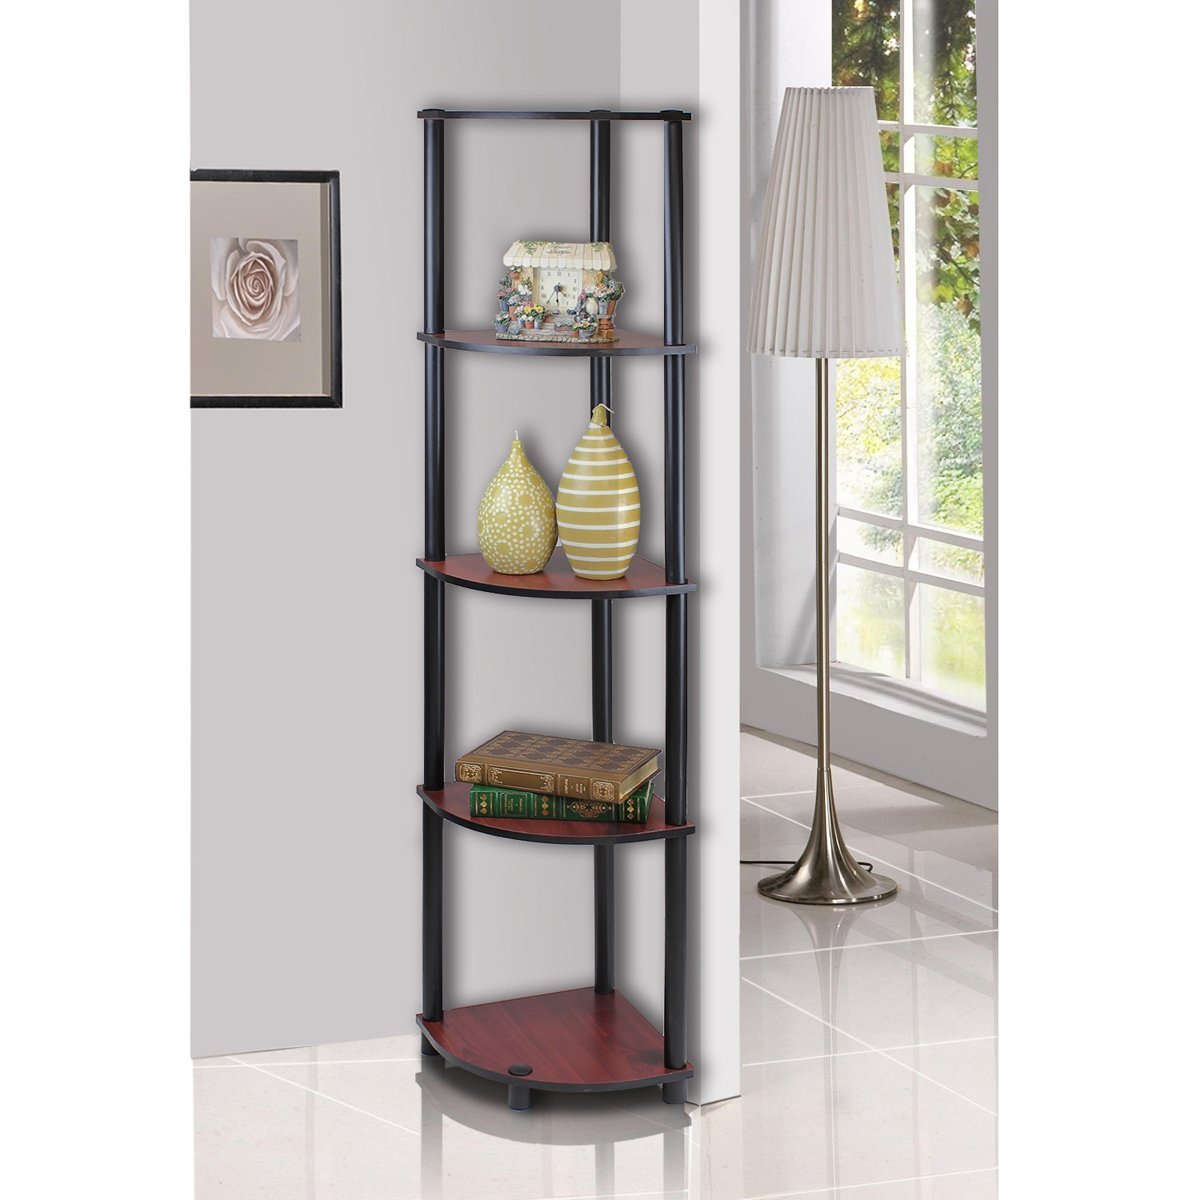 5 Tier Multi Purpose Corner Shelving Unit-Dark Cherry/Black Color